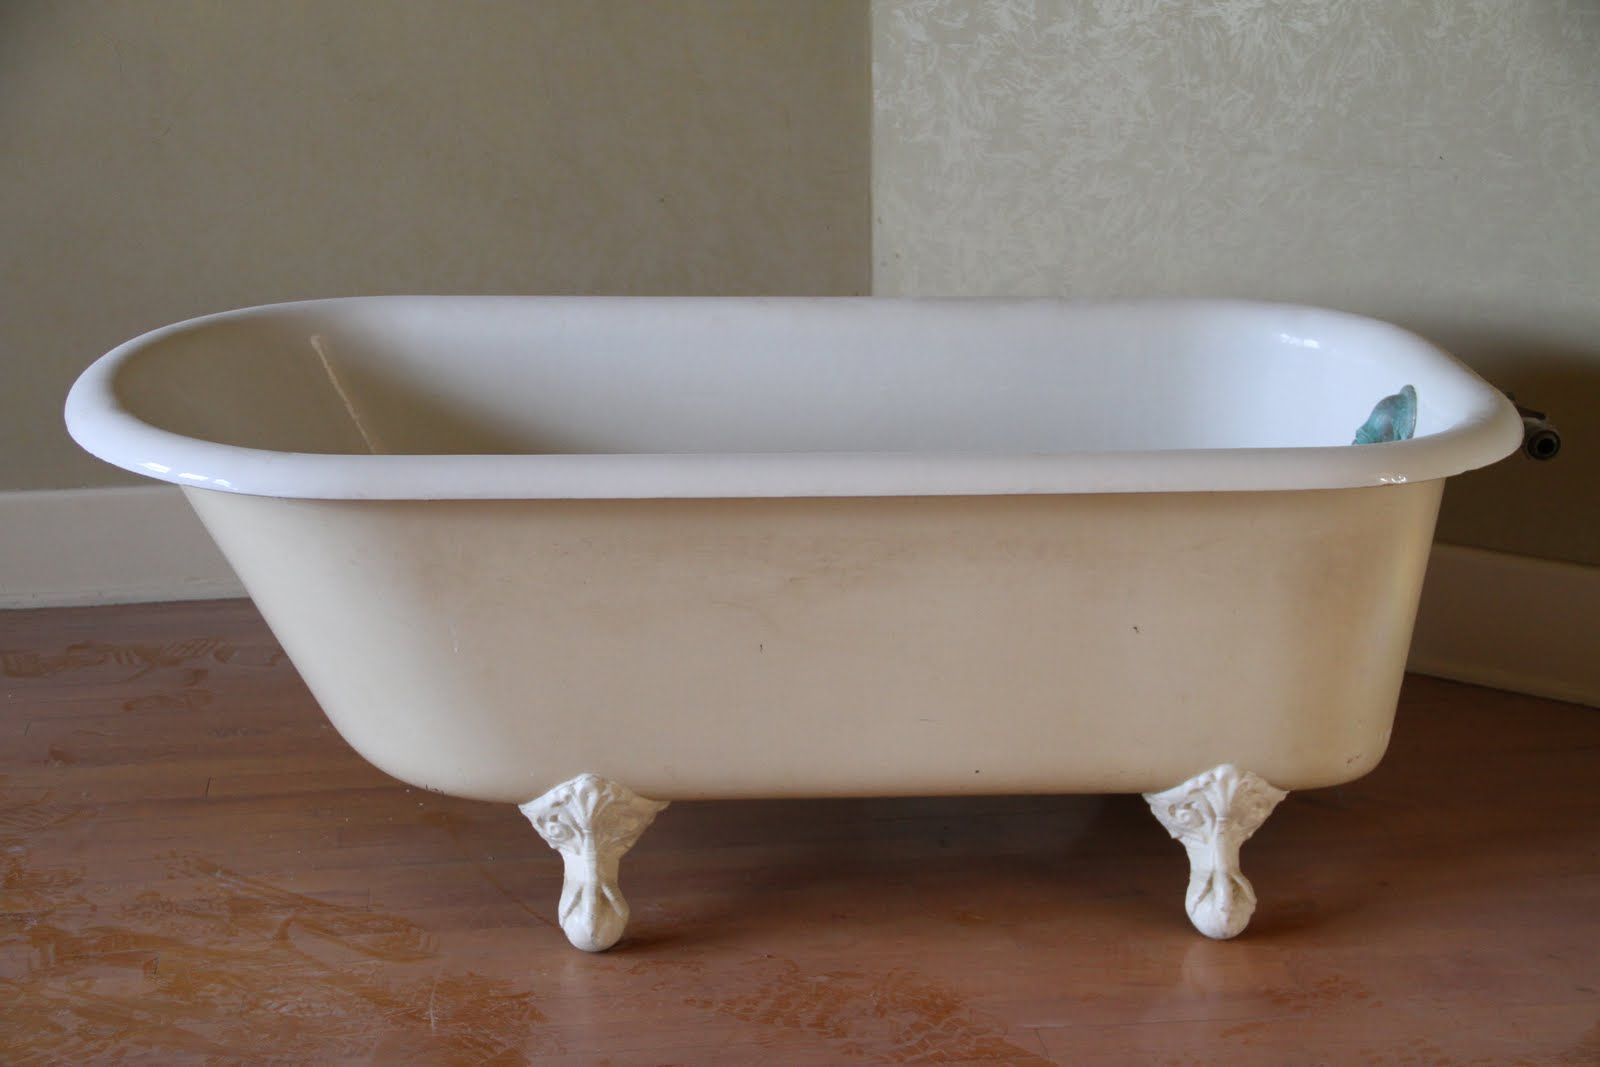 66quot Acrylic Double Ended Clawfoot Tub Classic Clawfoot Tub